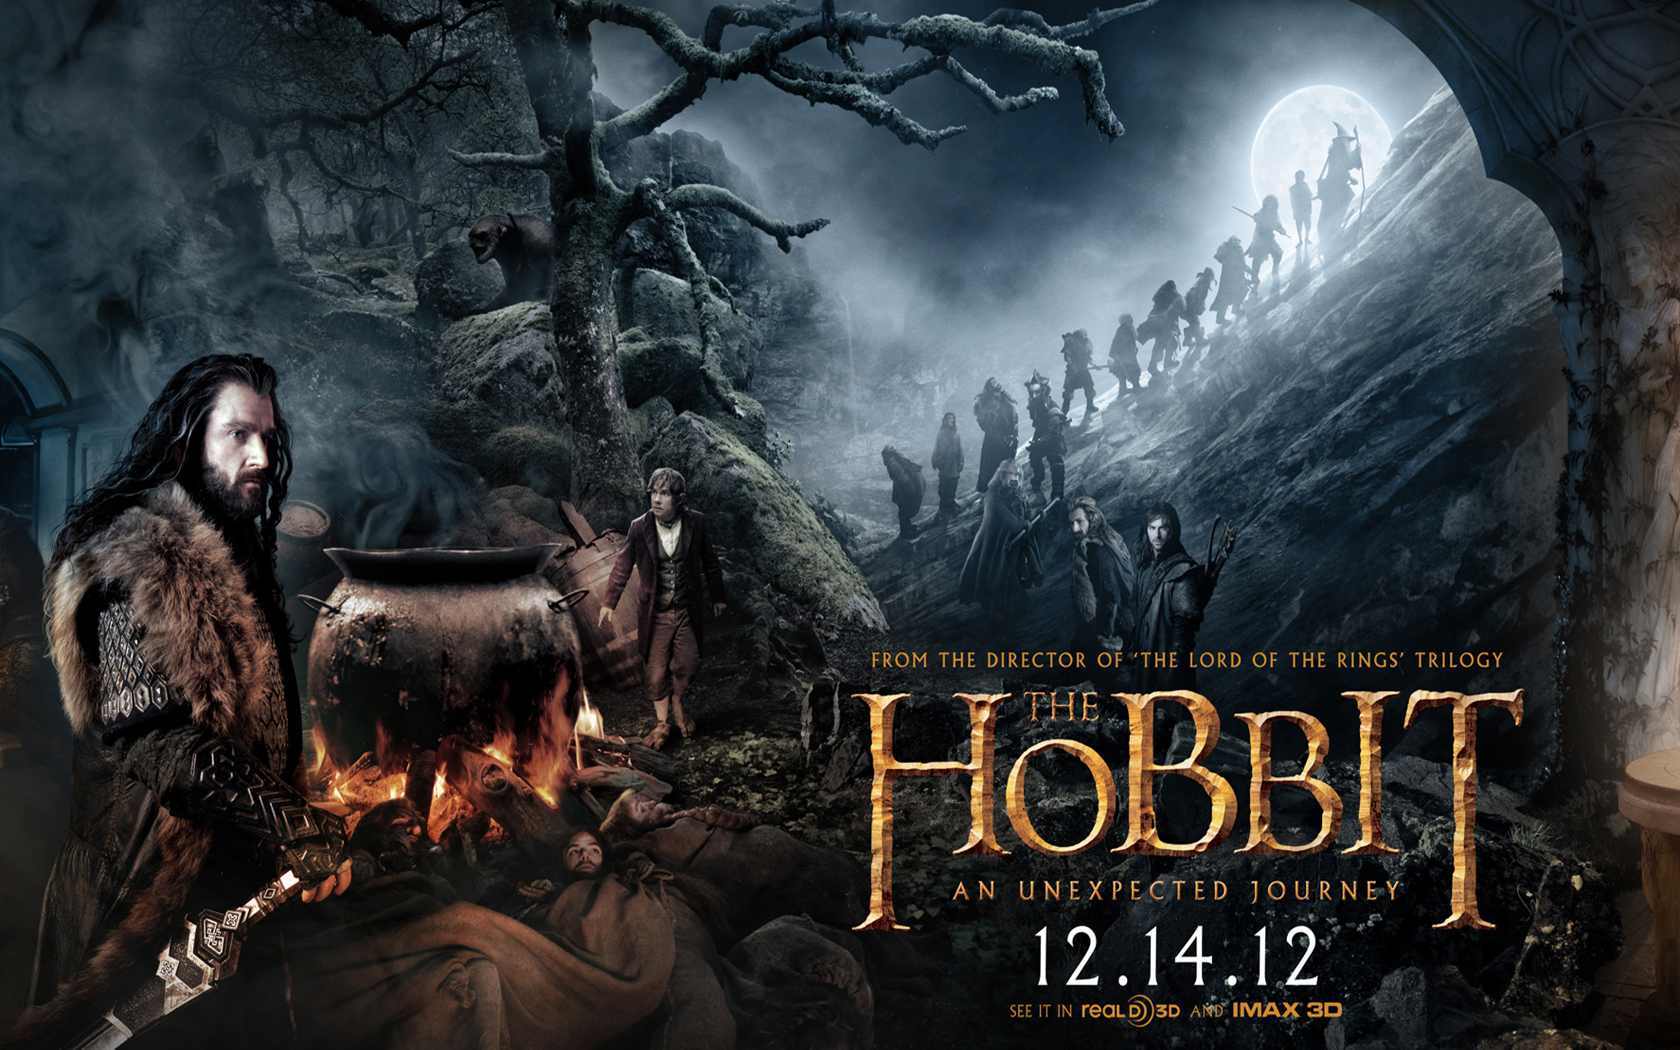 New wallpapers from quotThe Hobbit An unexpected journey 1680x1050